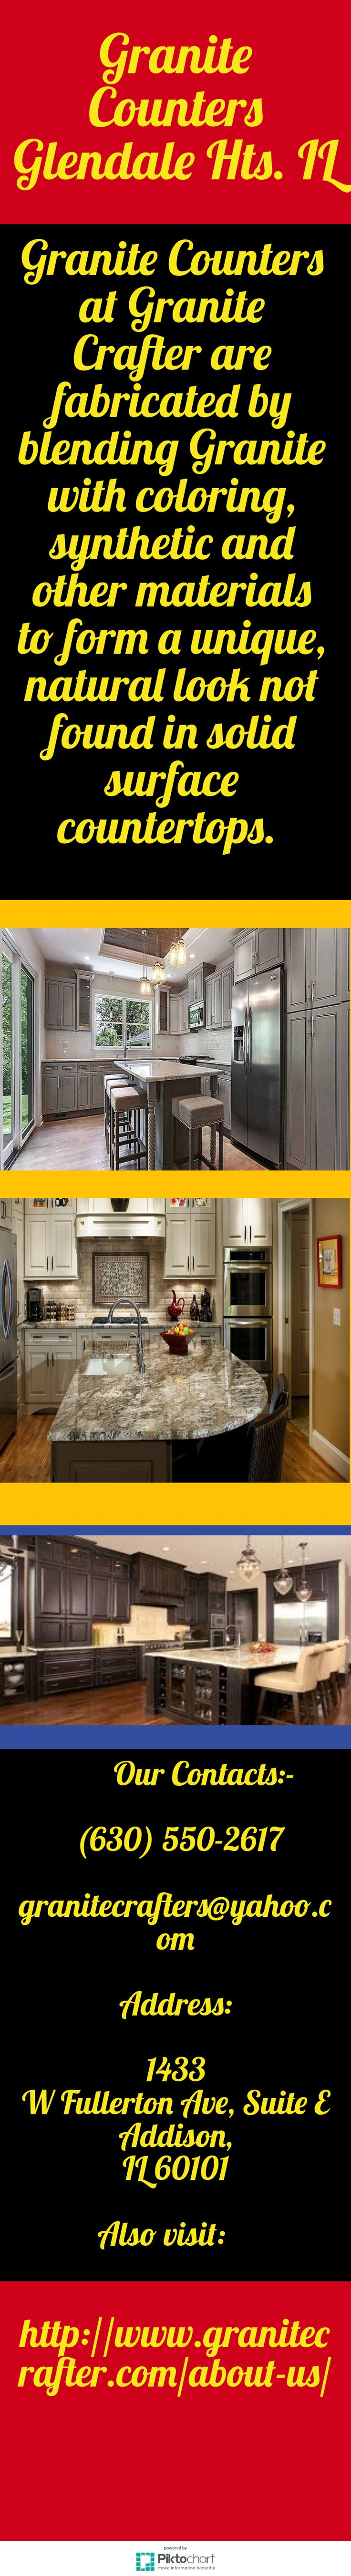 Granite Counters are a popular choice and are available in stunning color and pattern variations. For Granite Counters Glendale Hts. IL, call at (630) 550-2617.   http://www.granitecrafter.com/stones/marble/